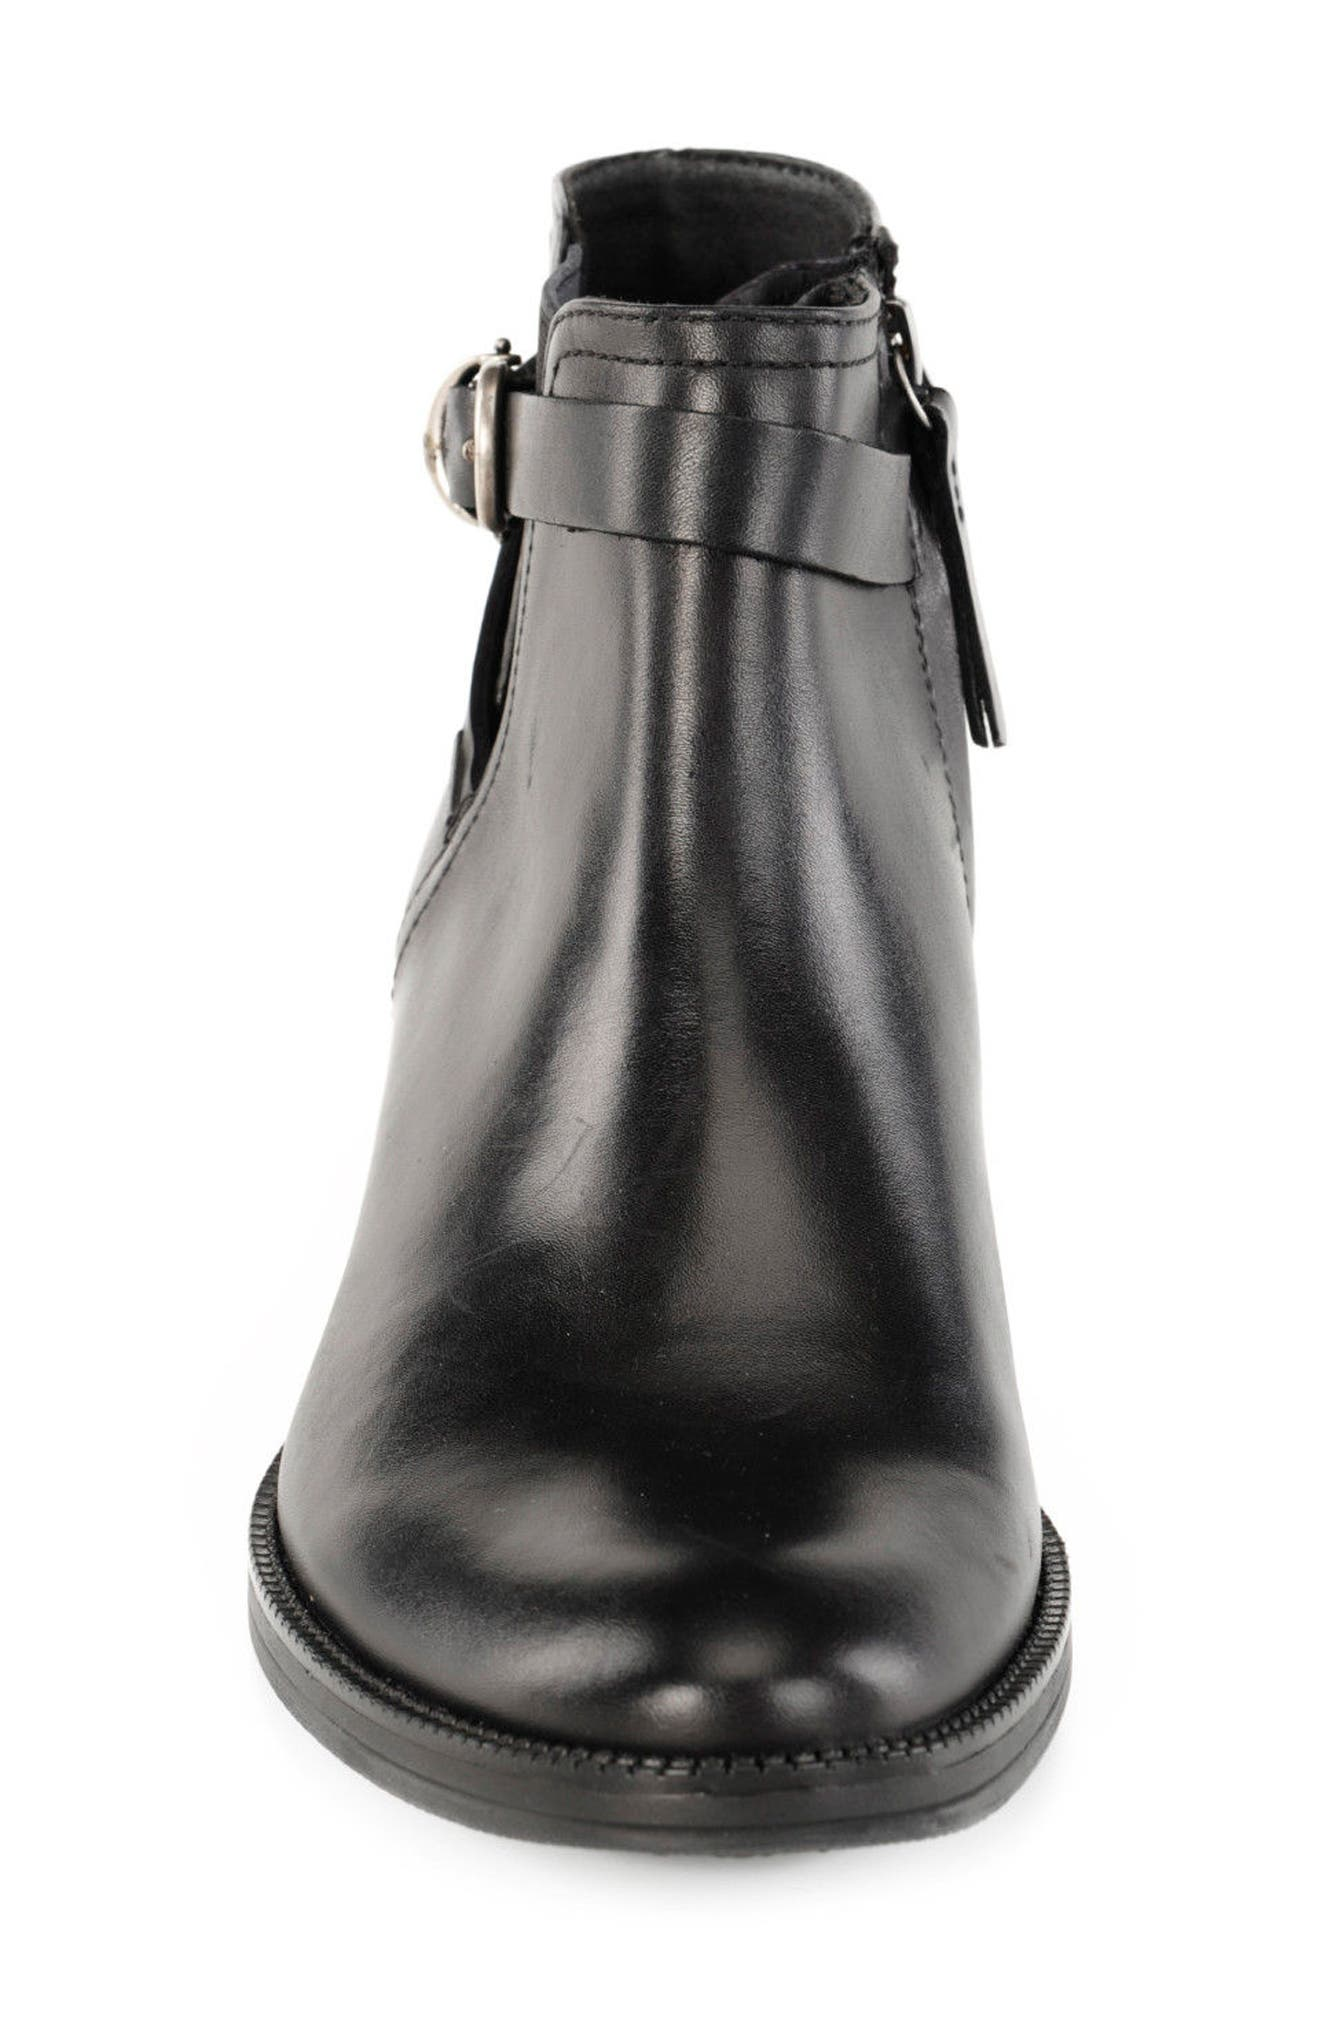 Nelisen ABX Waterproof Bootie,                             Alternate thumbnail 5, color,                             Black Leather